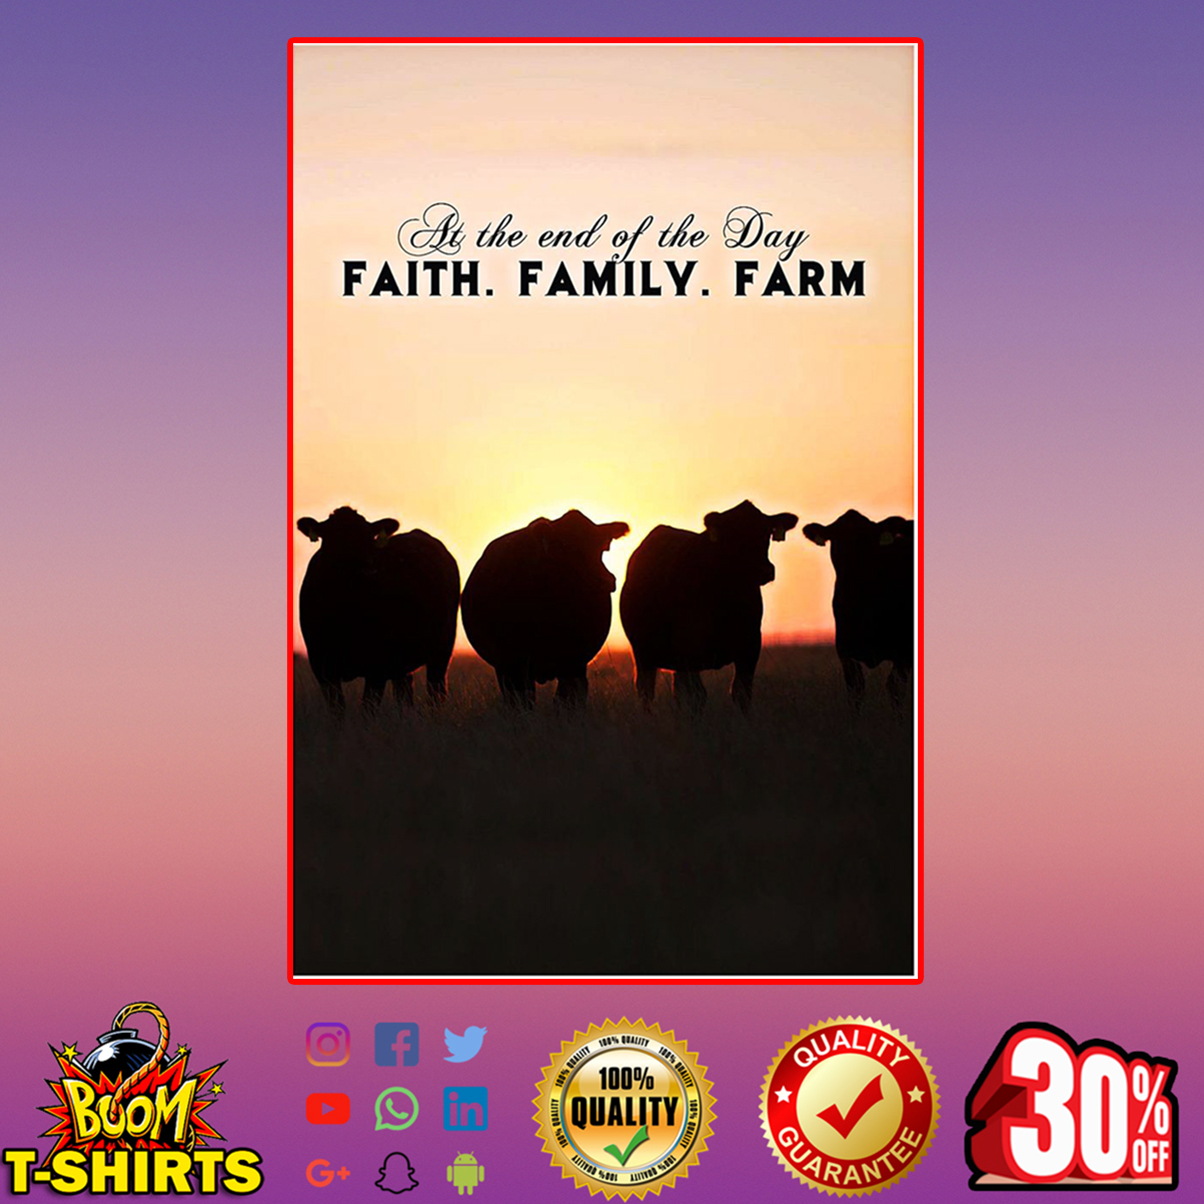 At the end of the day faith family farm poster